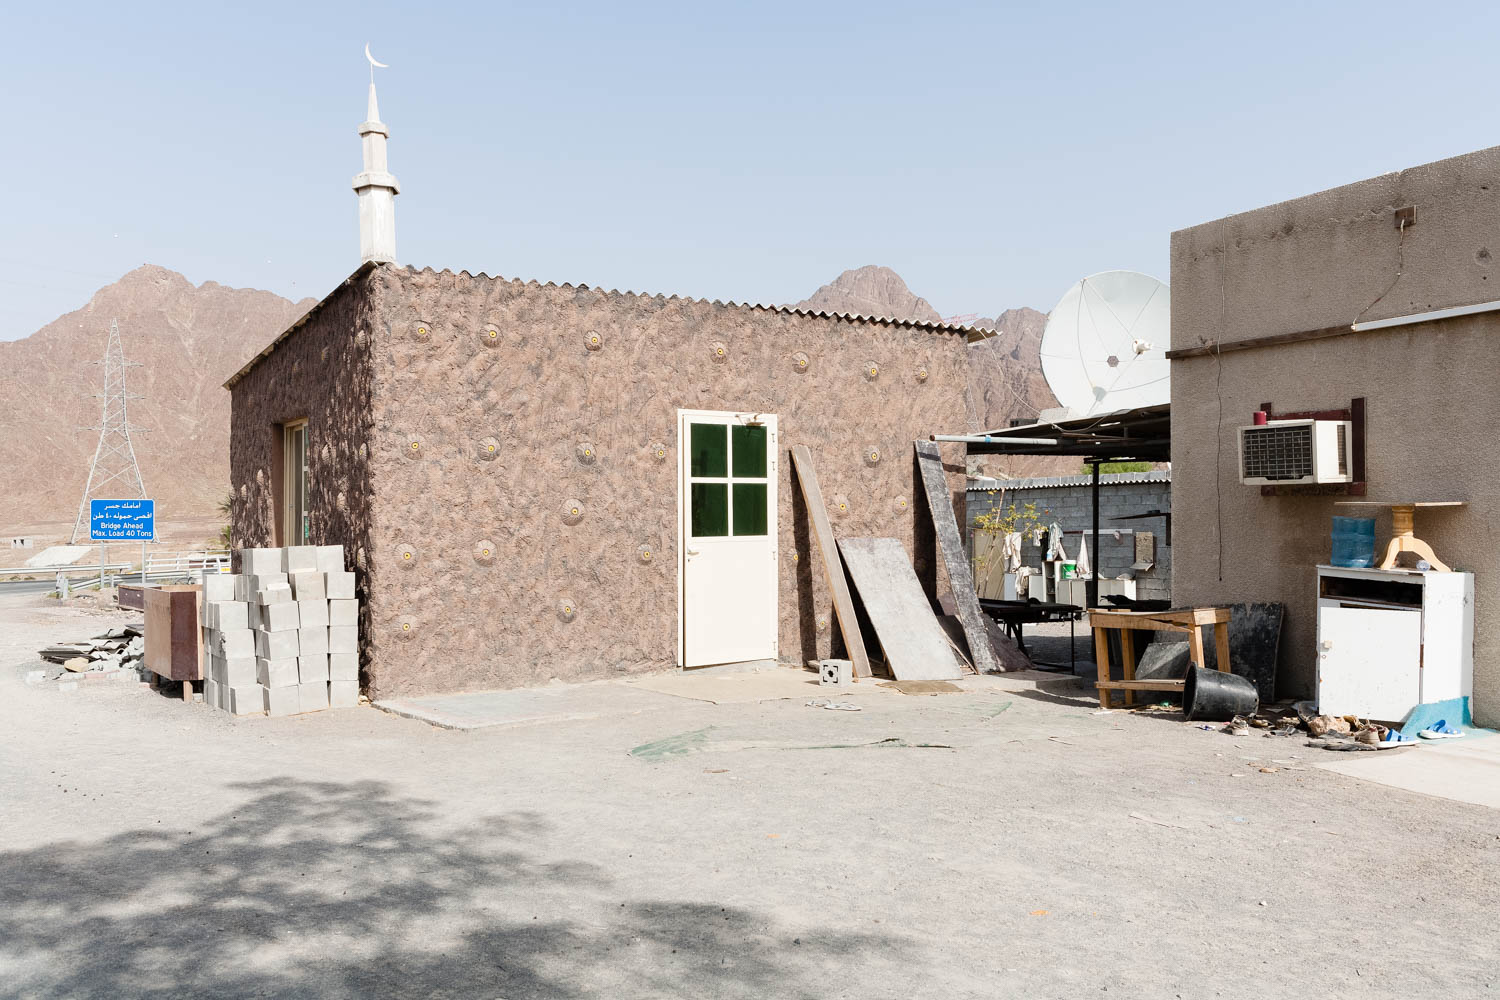 Rustic Mosque image from the project Portamosque by Duncan Chard